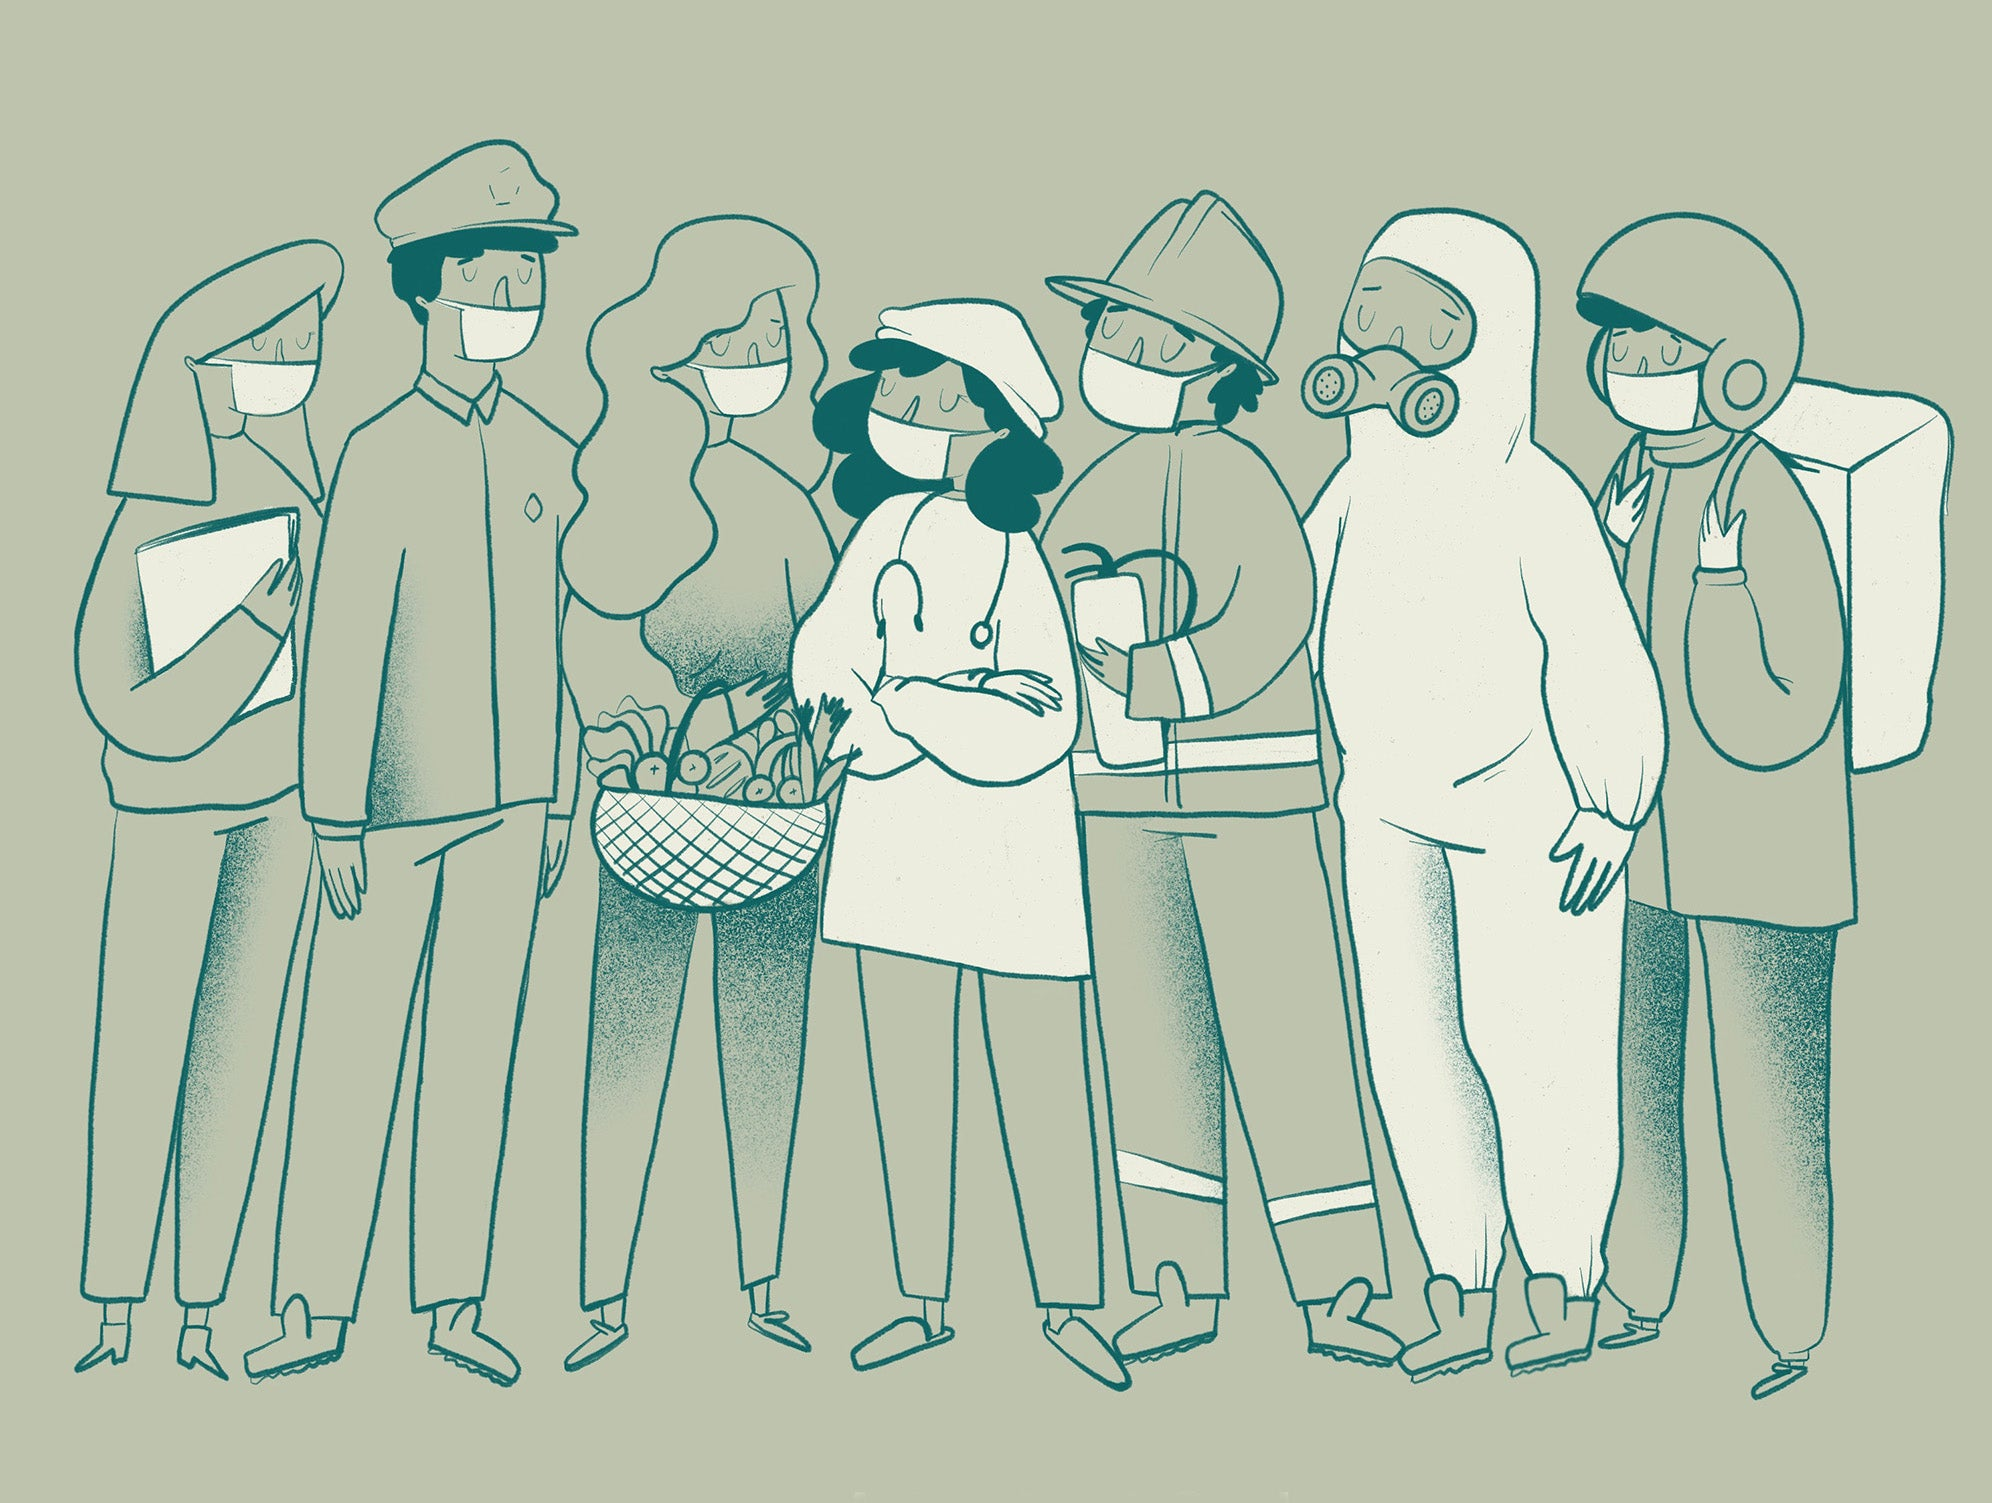 A cartoon illustration of workers wearing face masks.